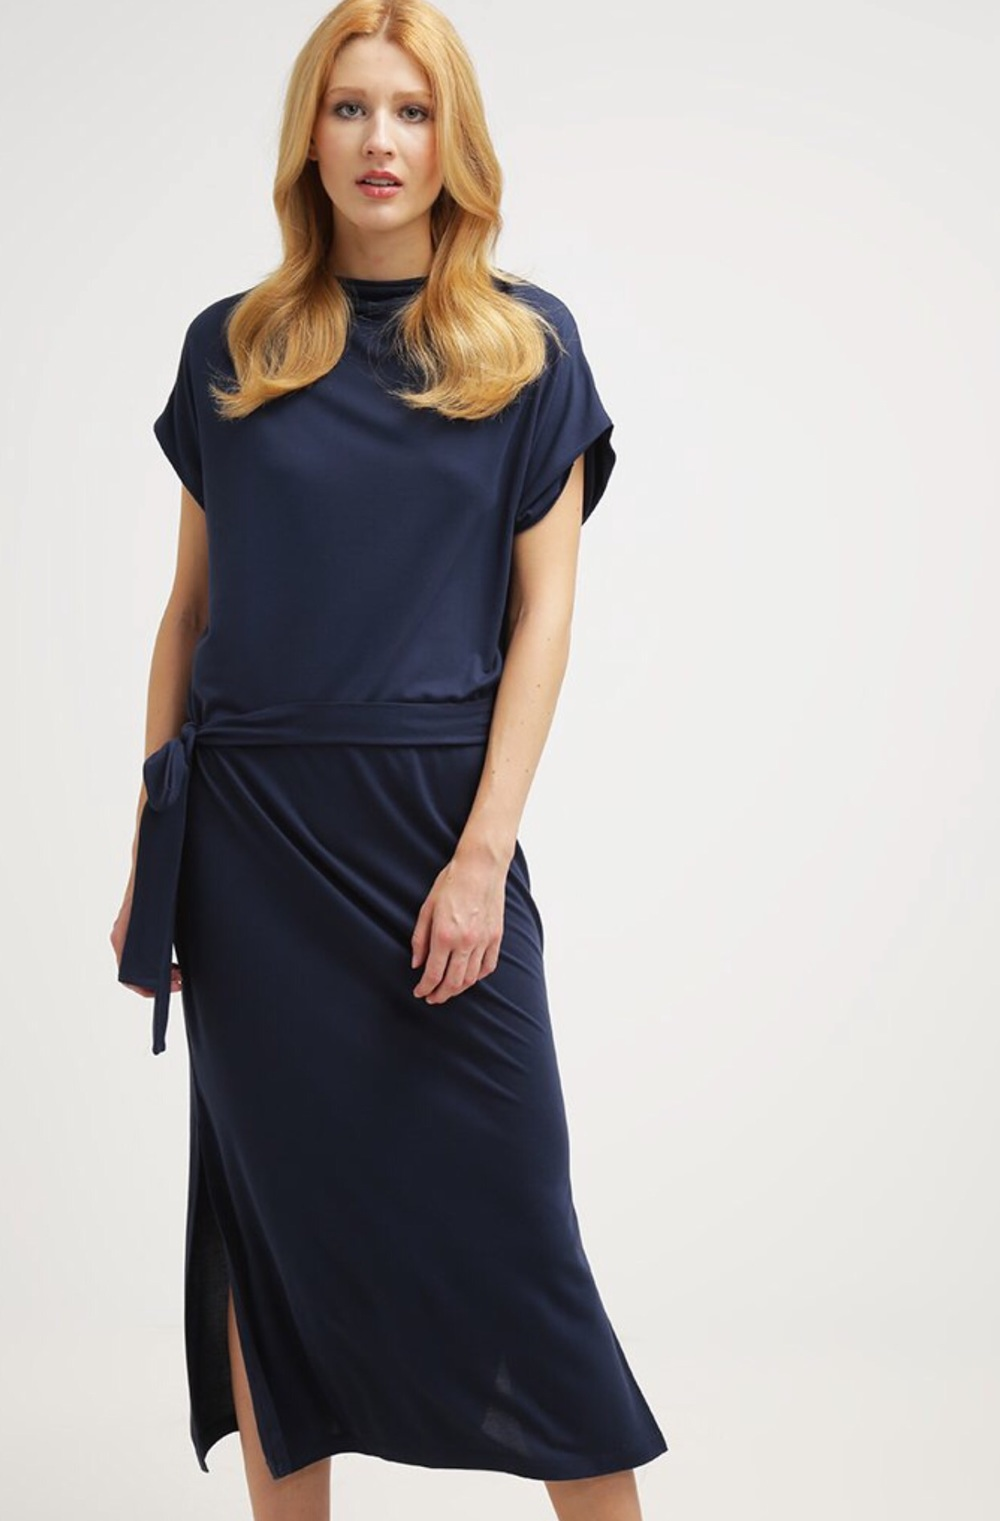 Navy Dress from Zalando 399 Dkk